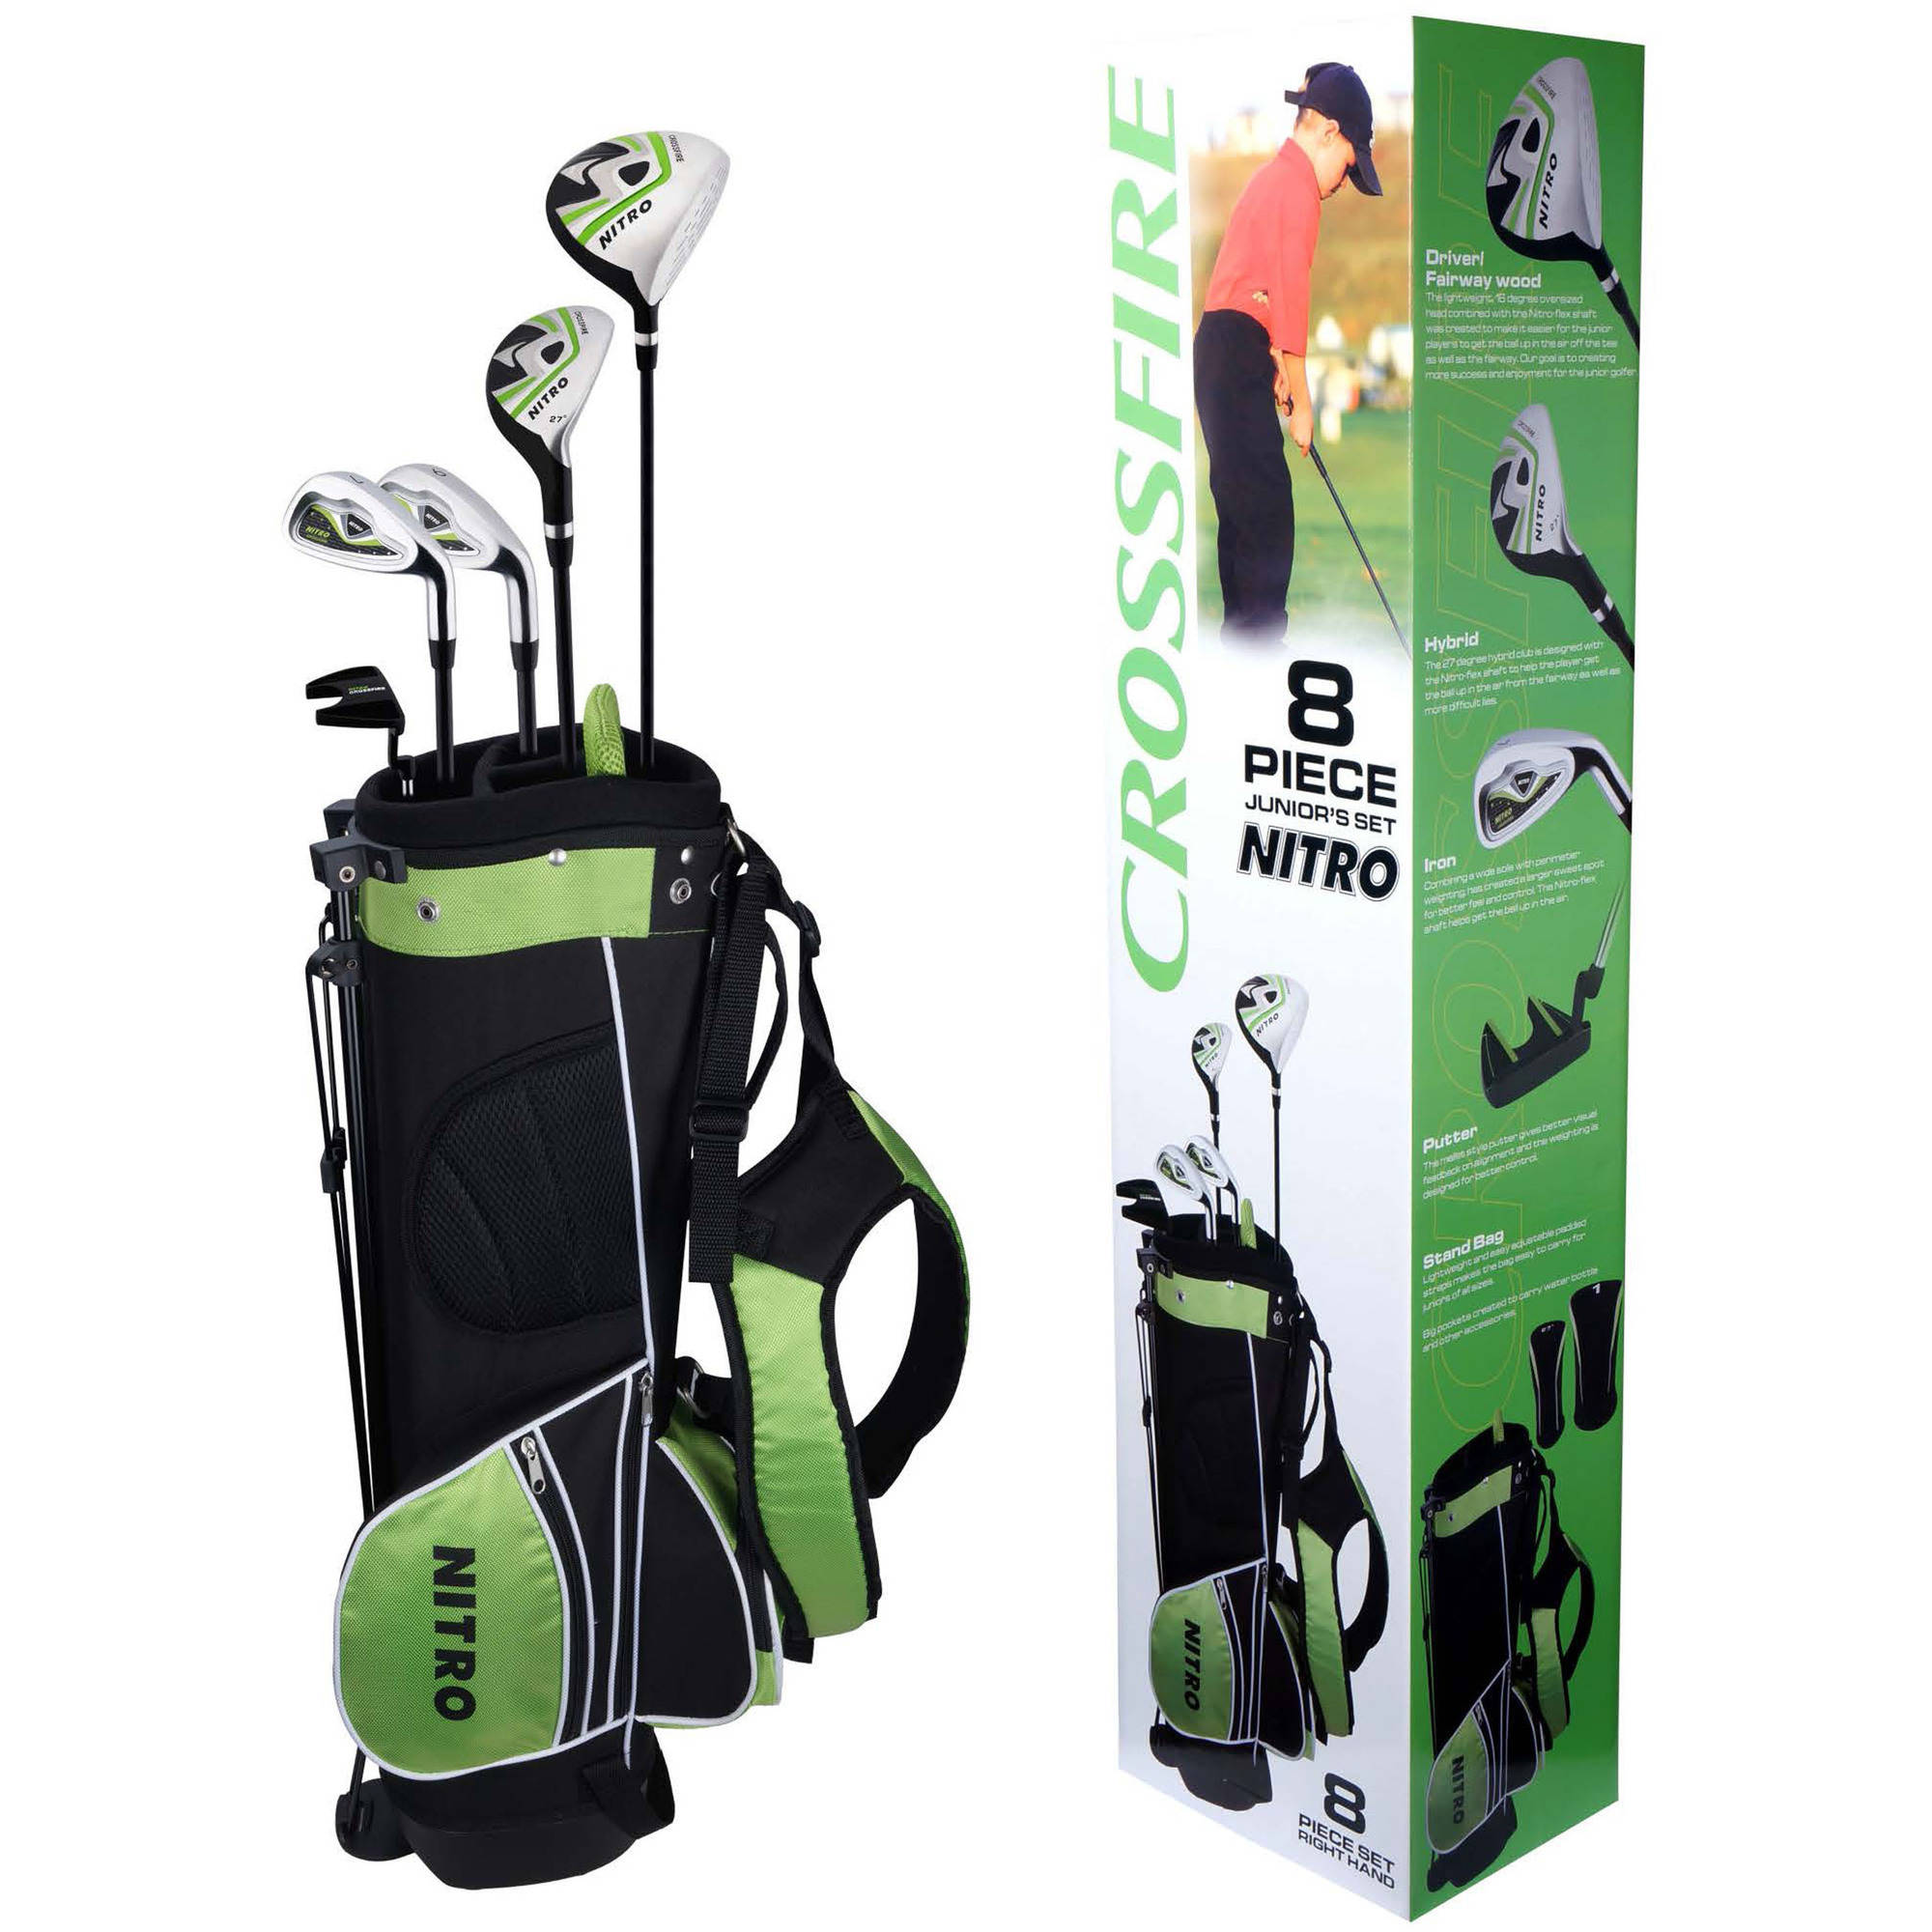 Nitro Golf Set, Child, 6-Piece